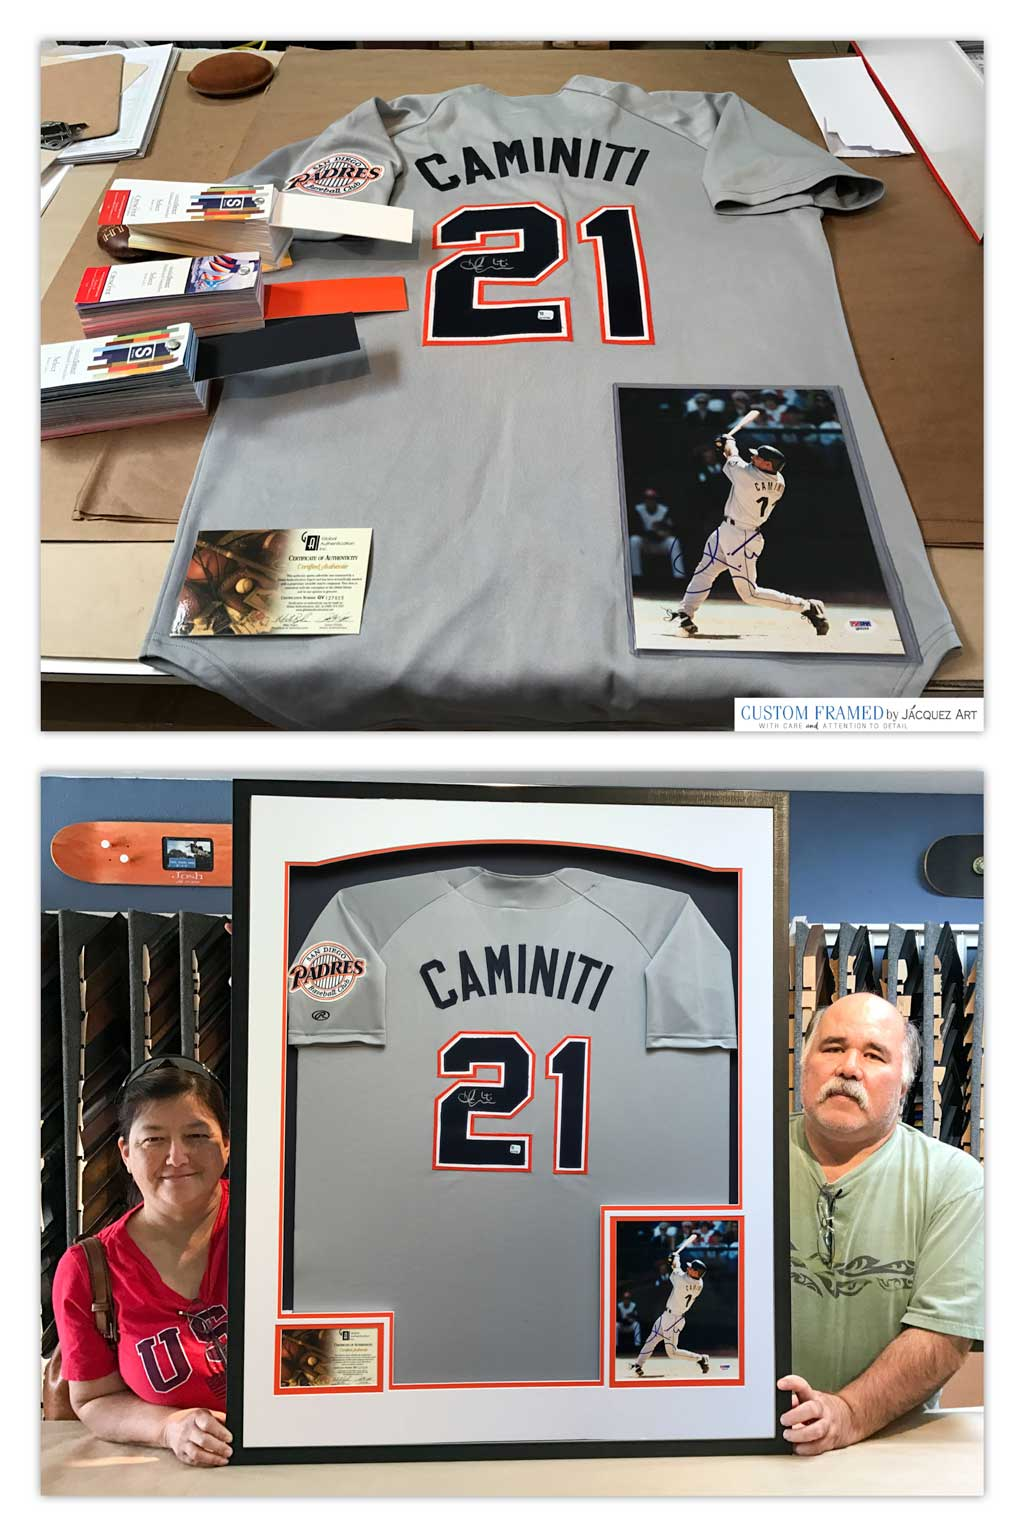 Our latest Custom Framed Jersey. Signed San Diego Padres' Ken Caminiti. We used the official San Diego Padres mat colors and included a signed photo and certificate of authenticity, as well as UV protection glass. Customer loved it!